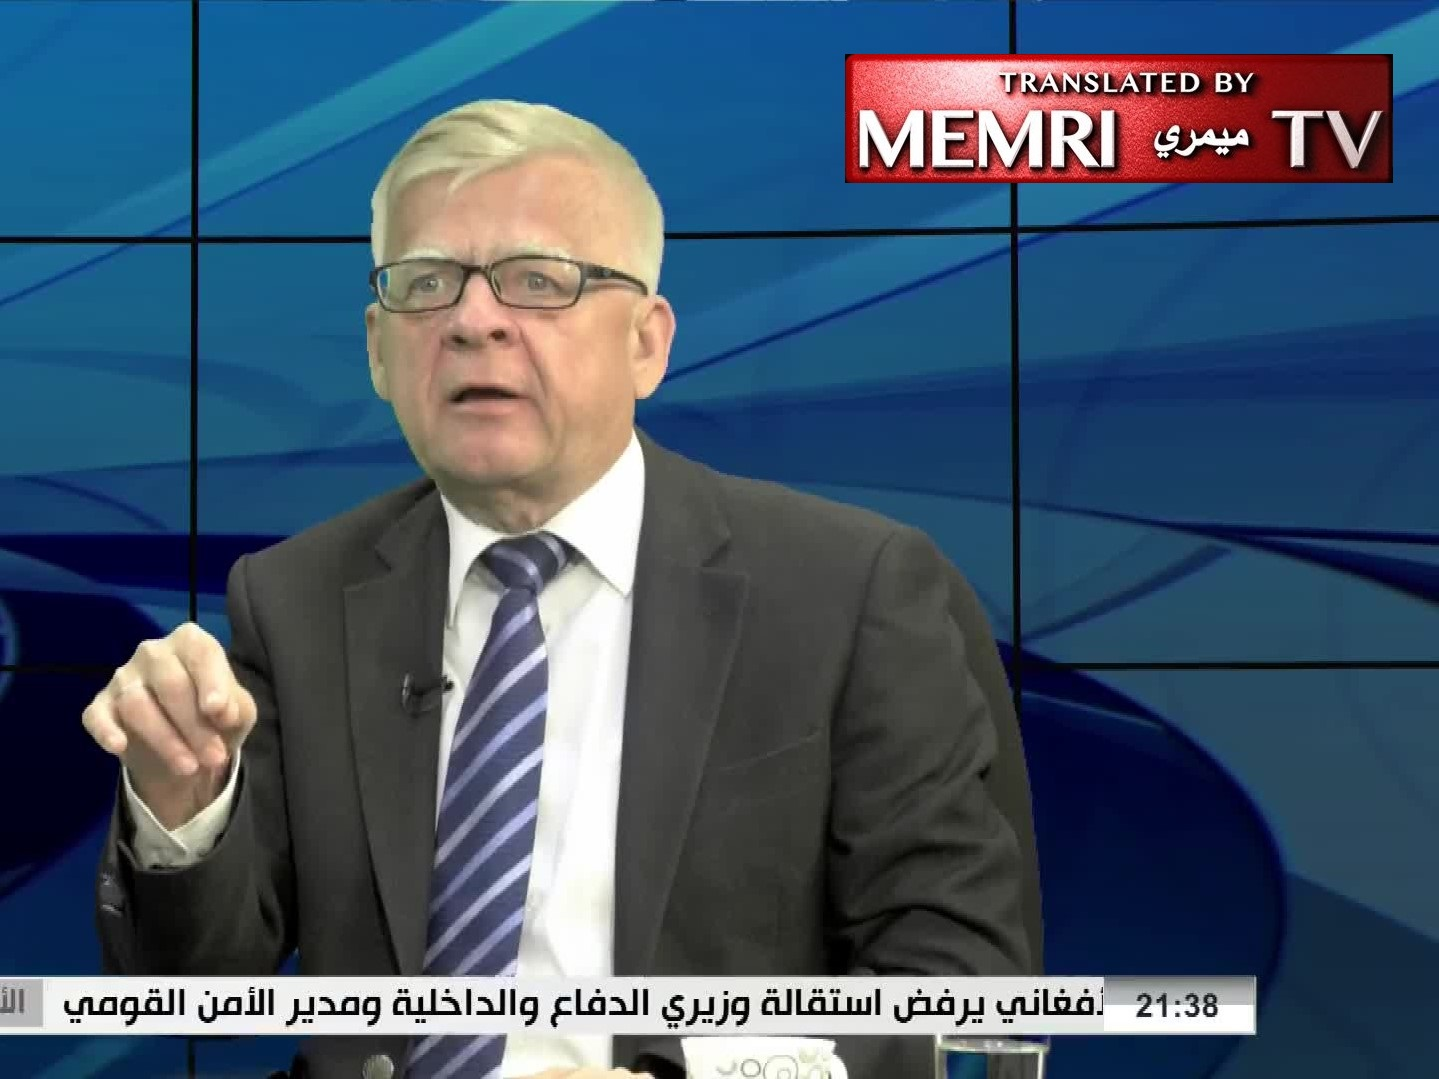 Russian Ambassador to Lebanon Alexander Zasypkin: The West Wants to Resort to the Issue of Chemical Weapons Again